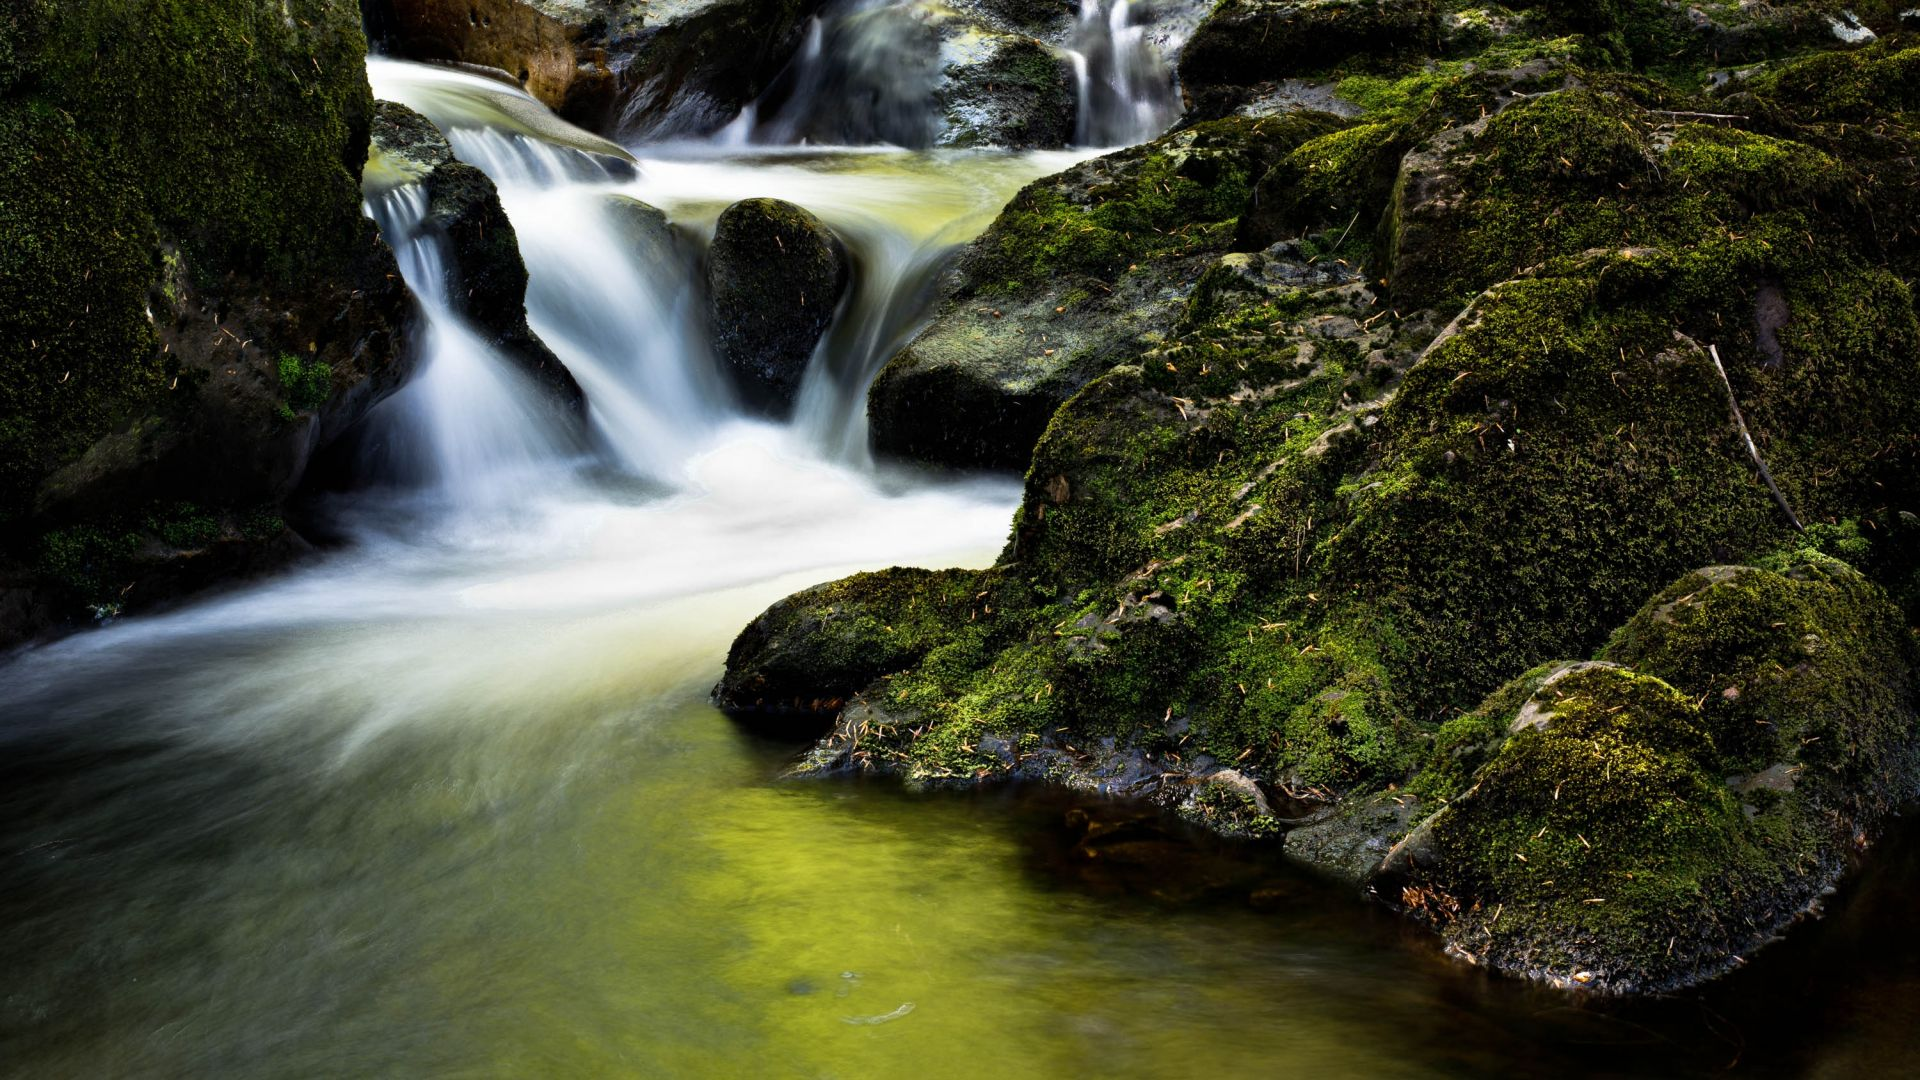 Waterfall, Ireland, 4K (horizontal)